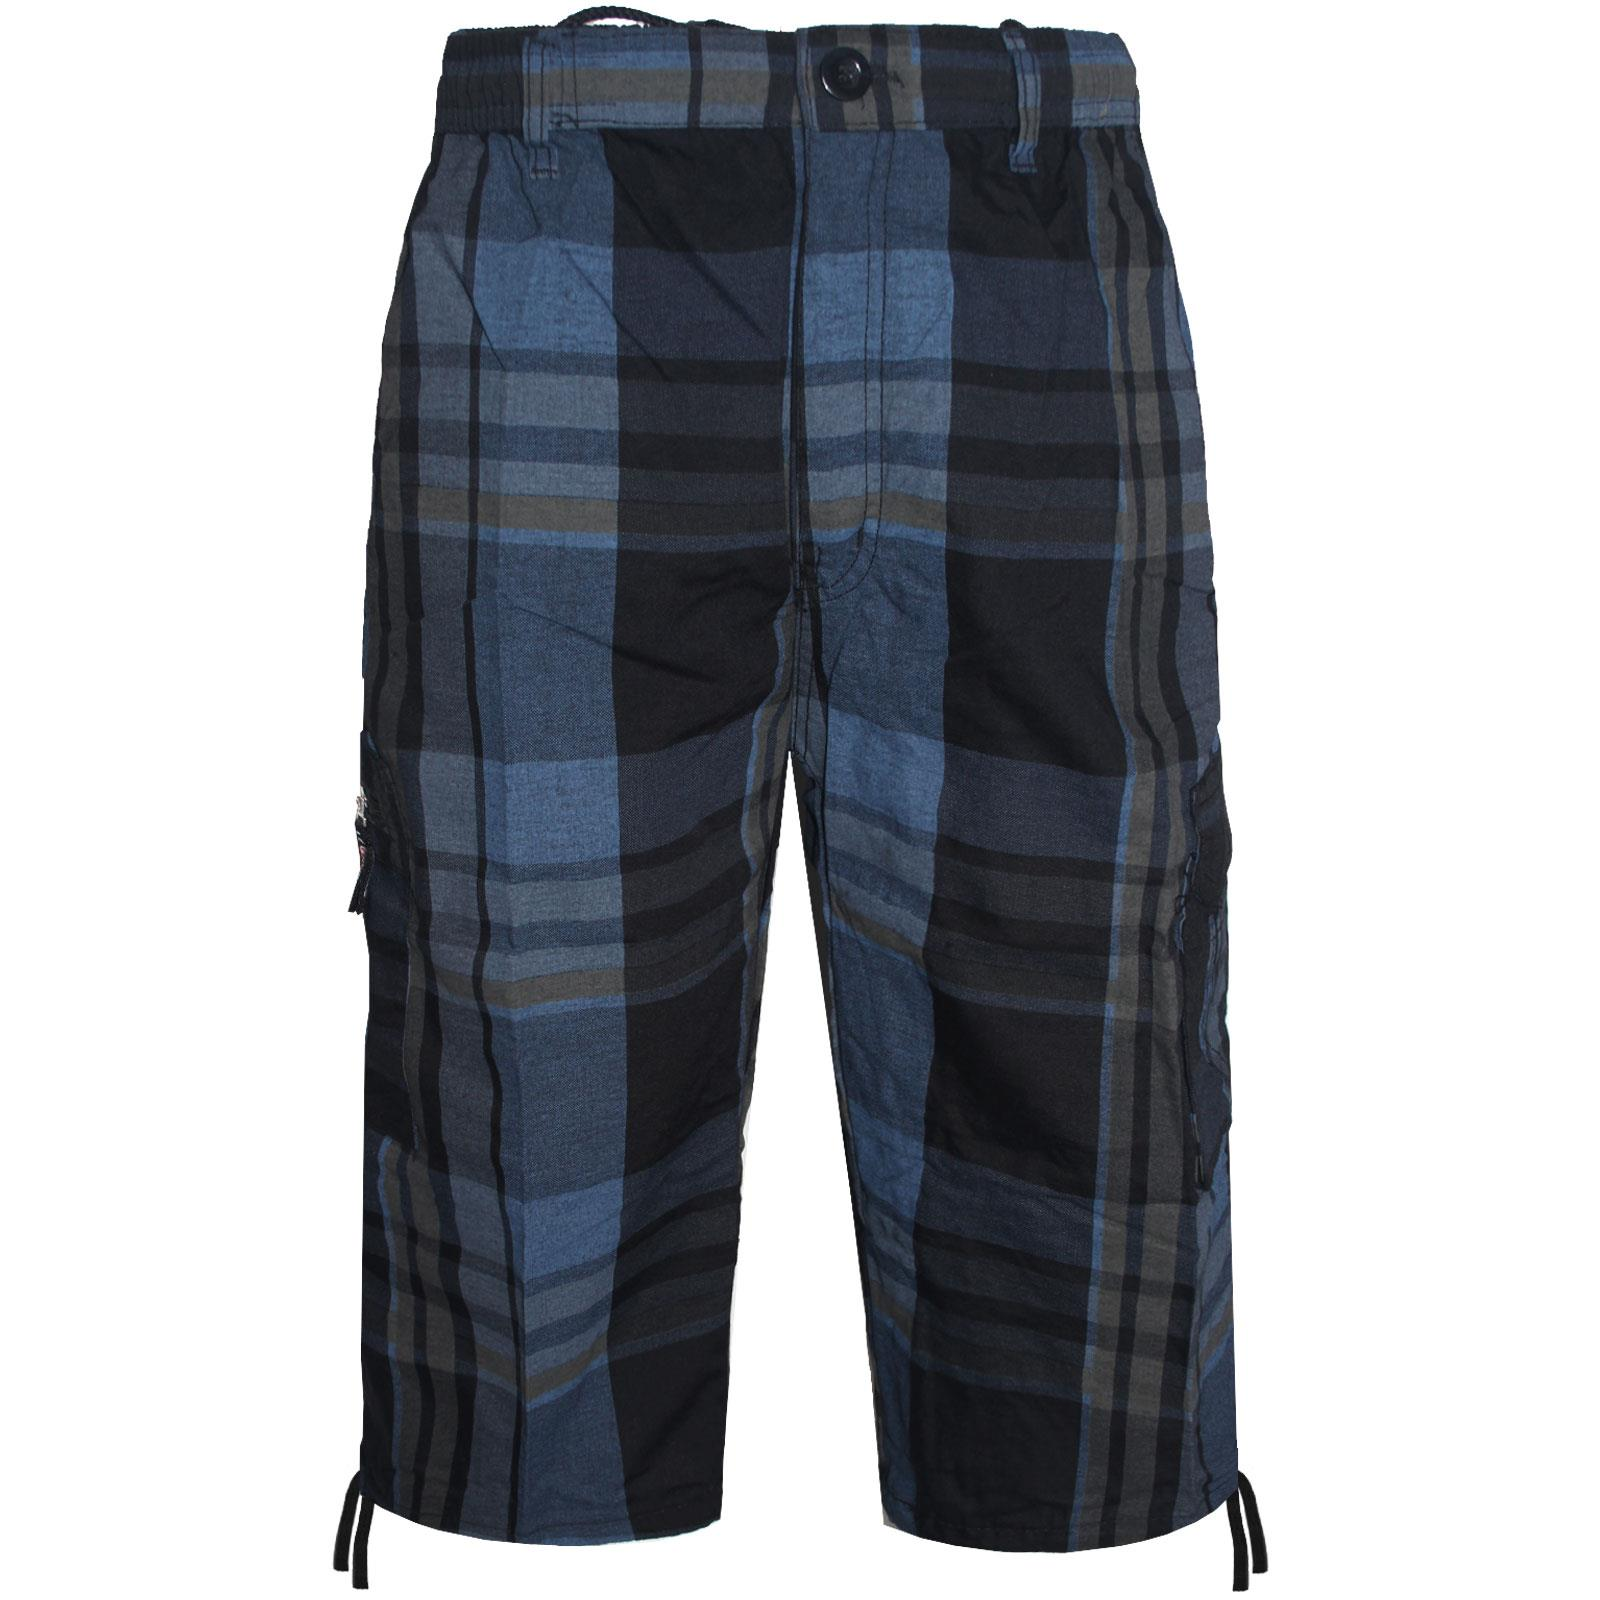 MENS CHECK SHORTS 3//4 LENGTH CASUAL WEAR ELASTICATED WAIST CARGO COMBAT TROUSERS